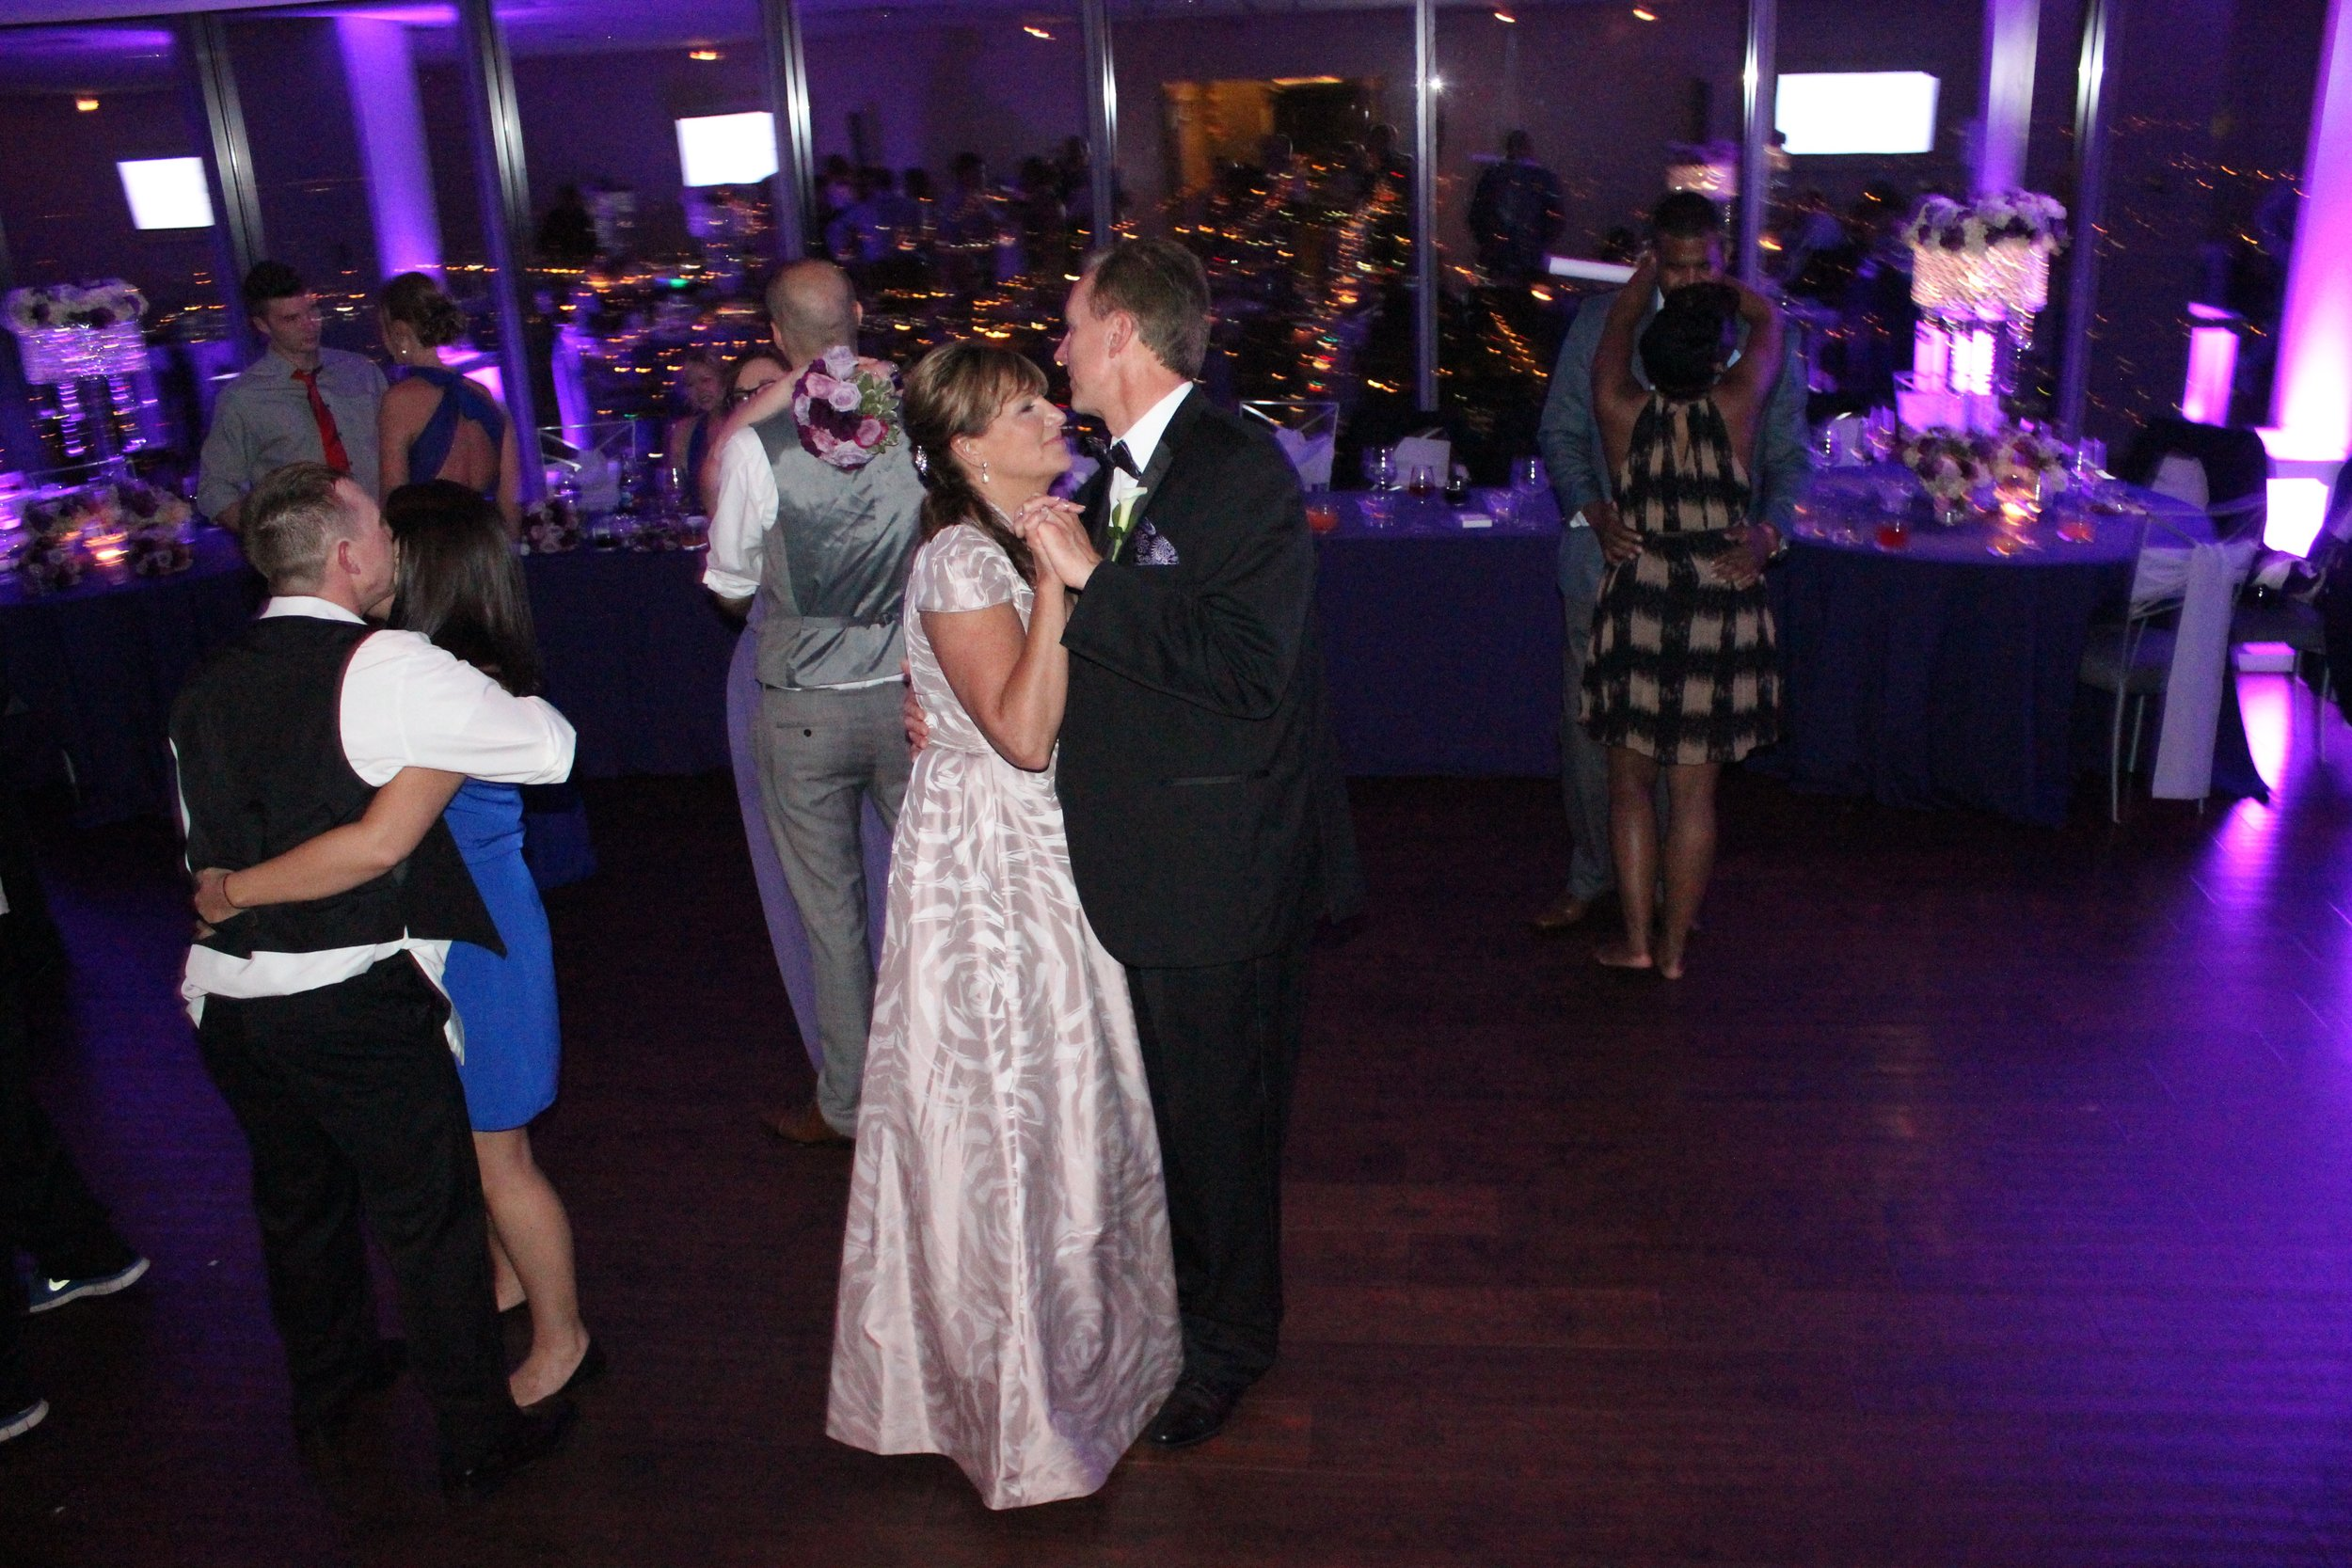 Allie's Mom & Dad enjoy a slow dance